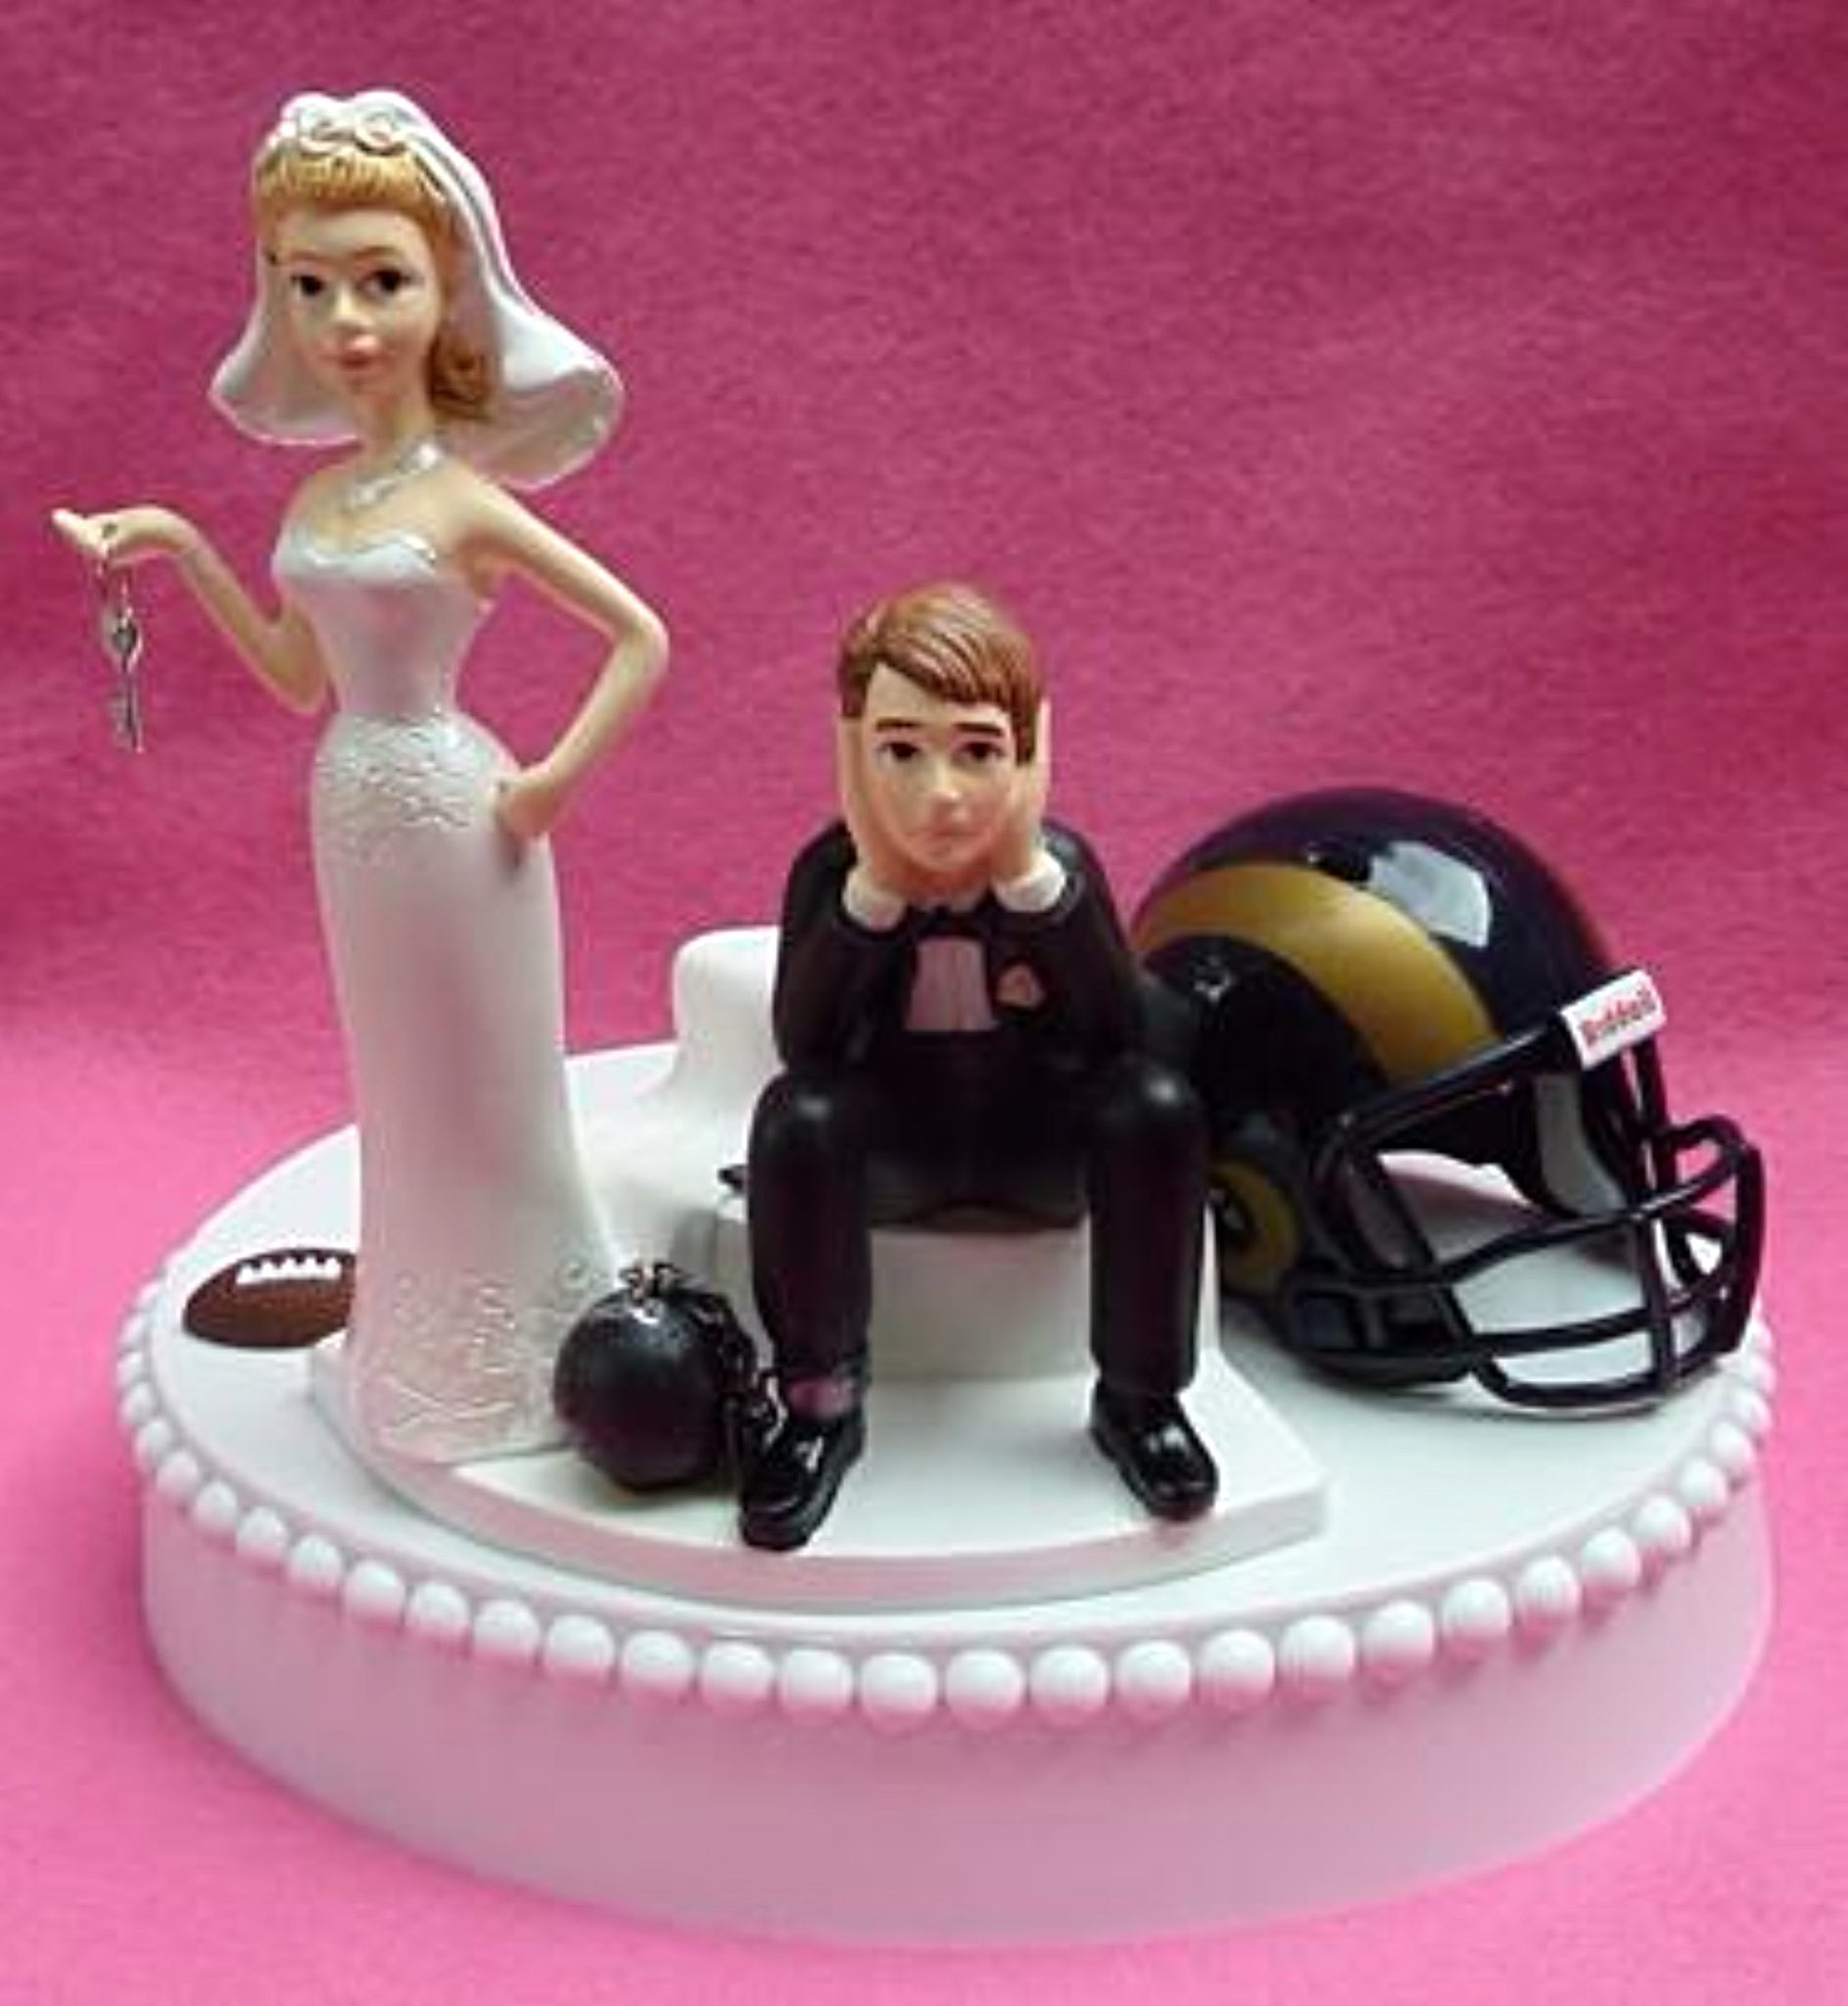 Los Angeles Rams Wedding Cake Topper NFL Football LA Sports Fans Humorous Reception Gift Item Idea